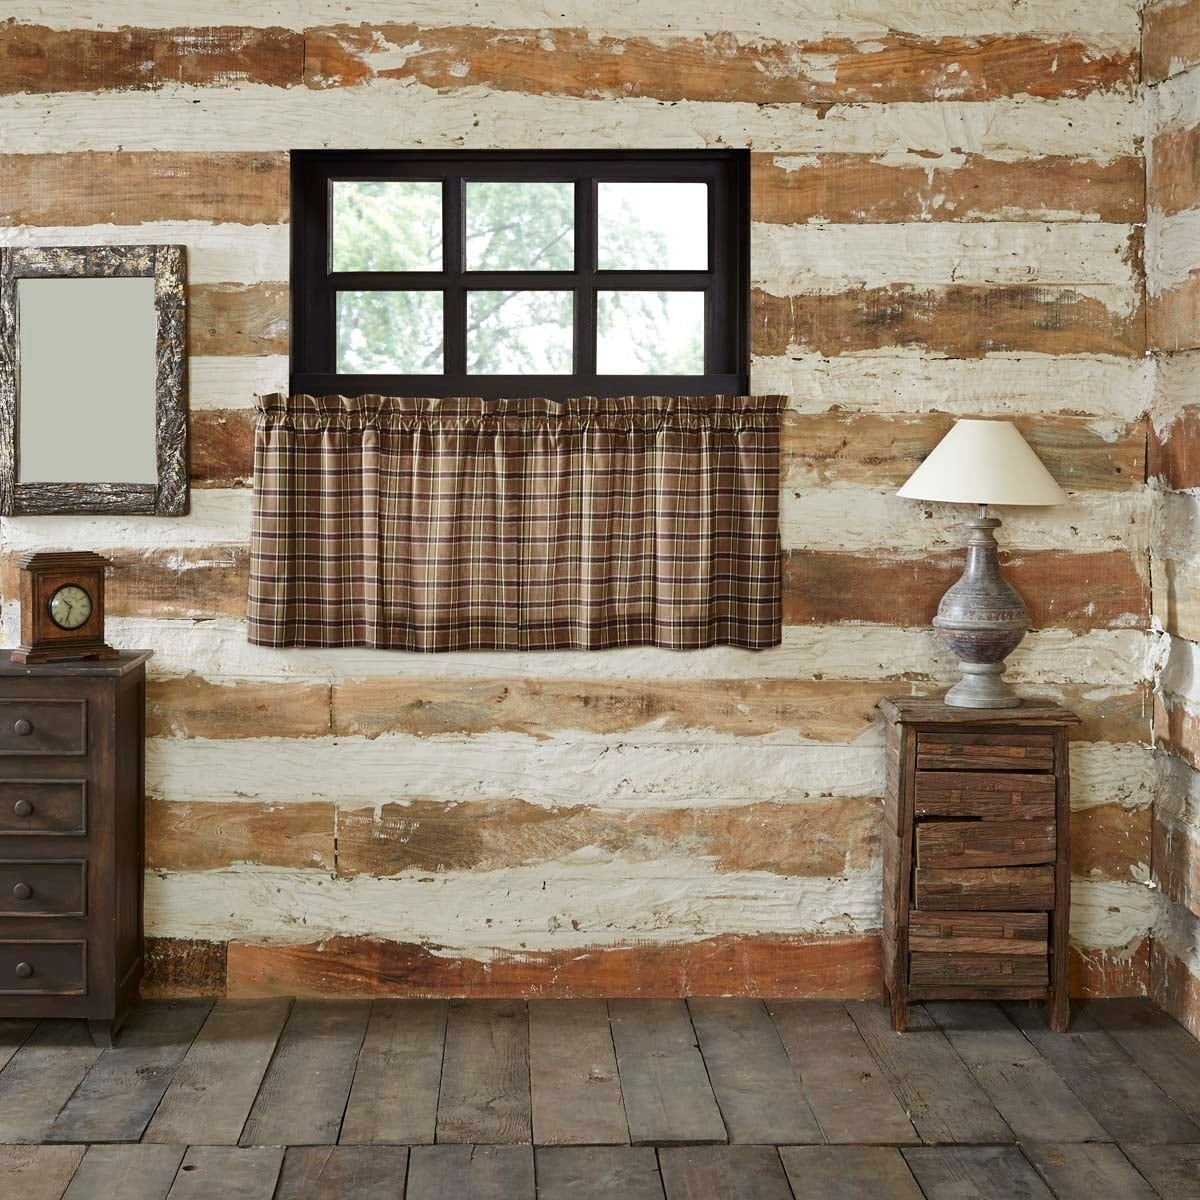 Tan Rustic Kitchen Curtains VHC Wyatt Tier Pair Rod Pocket Cotton Plaid